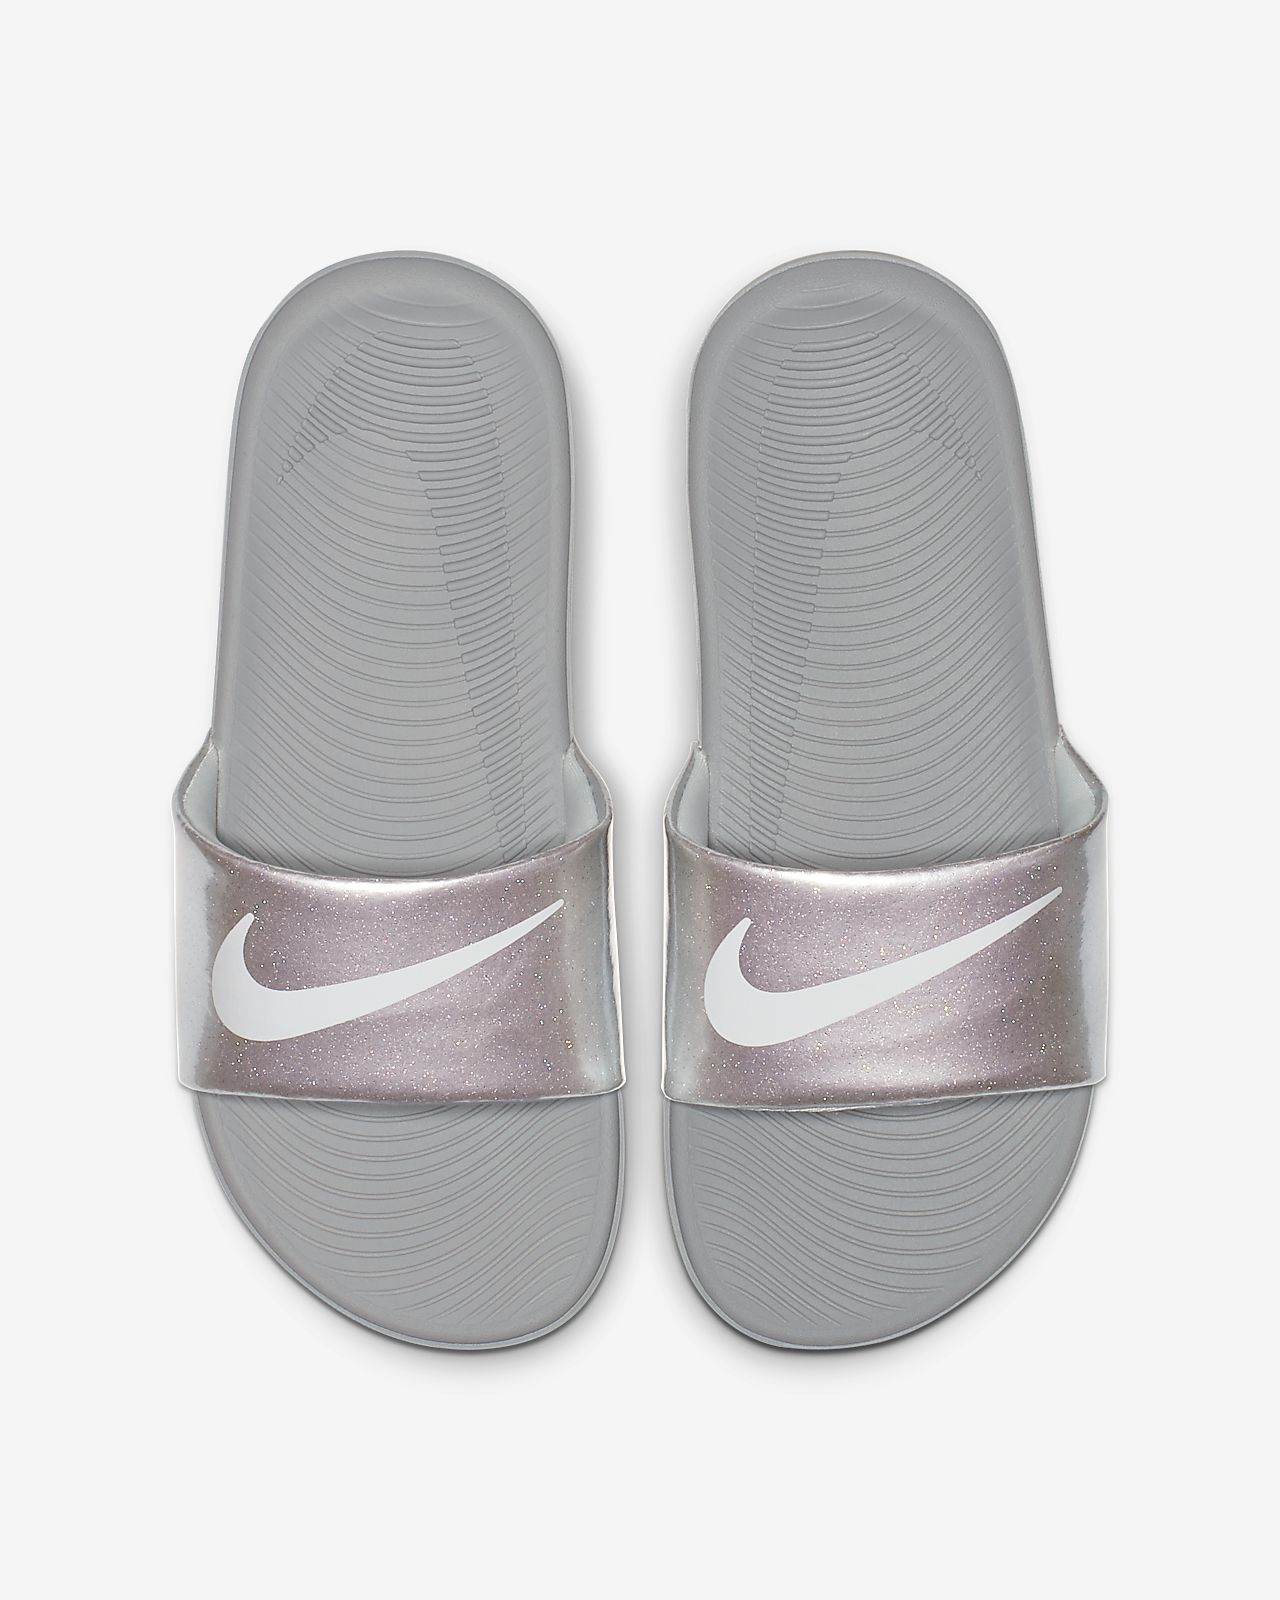 Nike Kawa Slide (GS/PS) 幼童/大童拖鞋